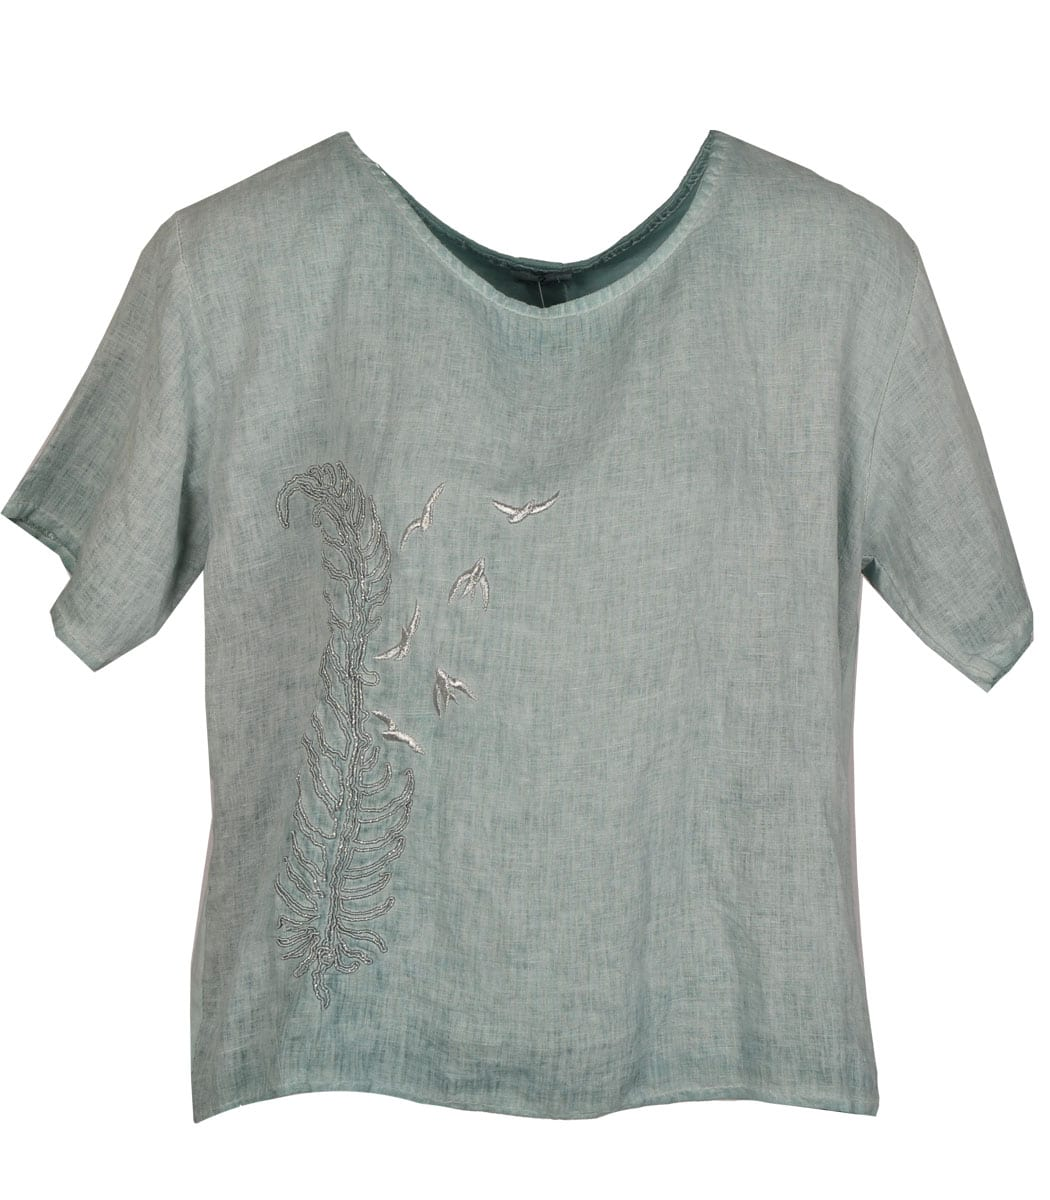 2-Textured embroidered feather top